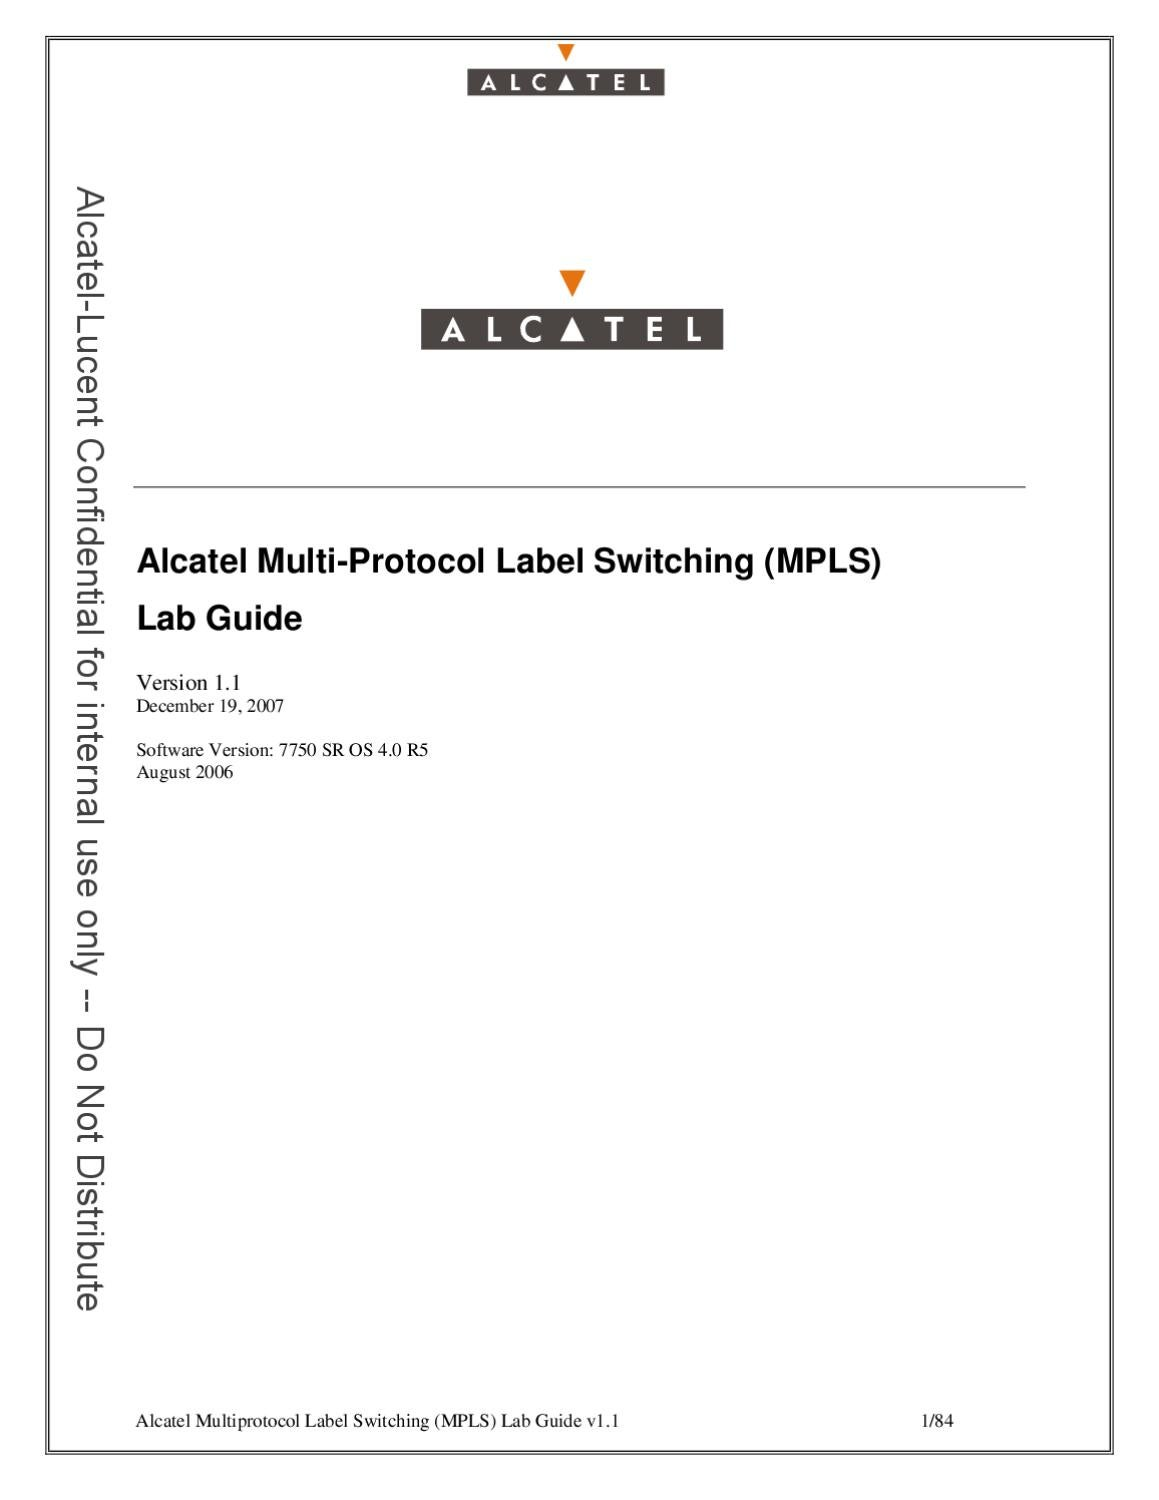 Alcatel-Lucent MPLS Lab Guide by Zurgani Alaa - issuu